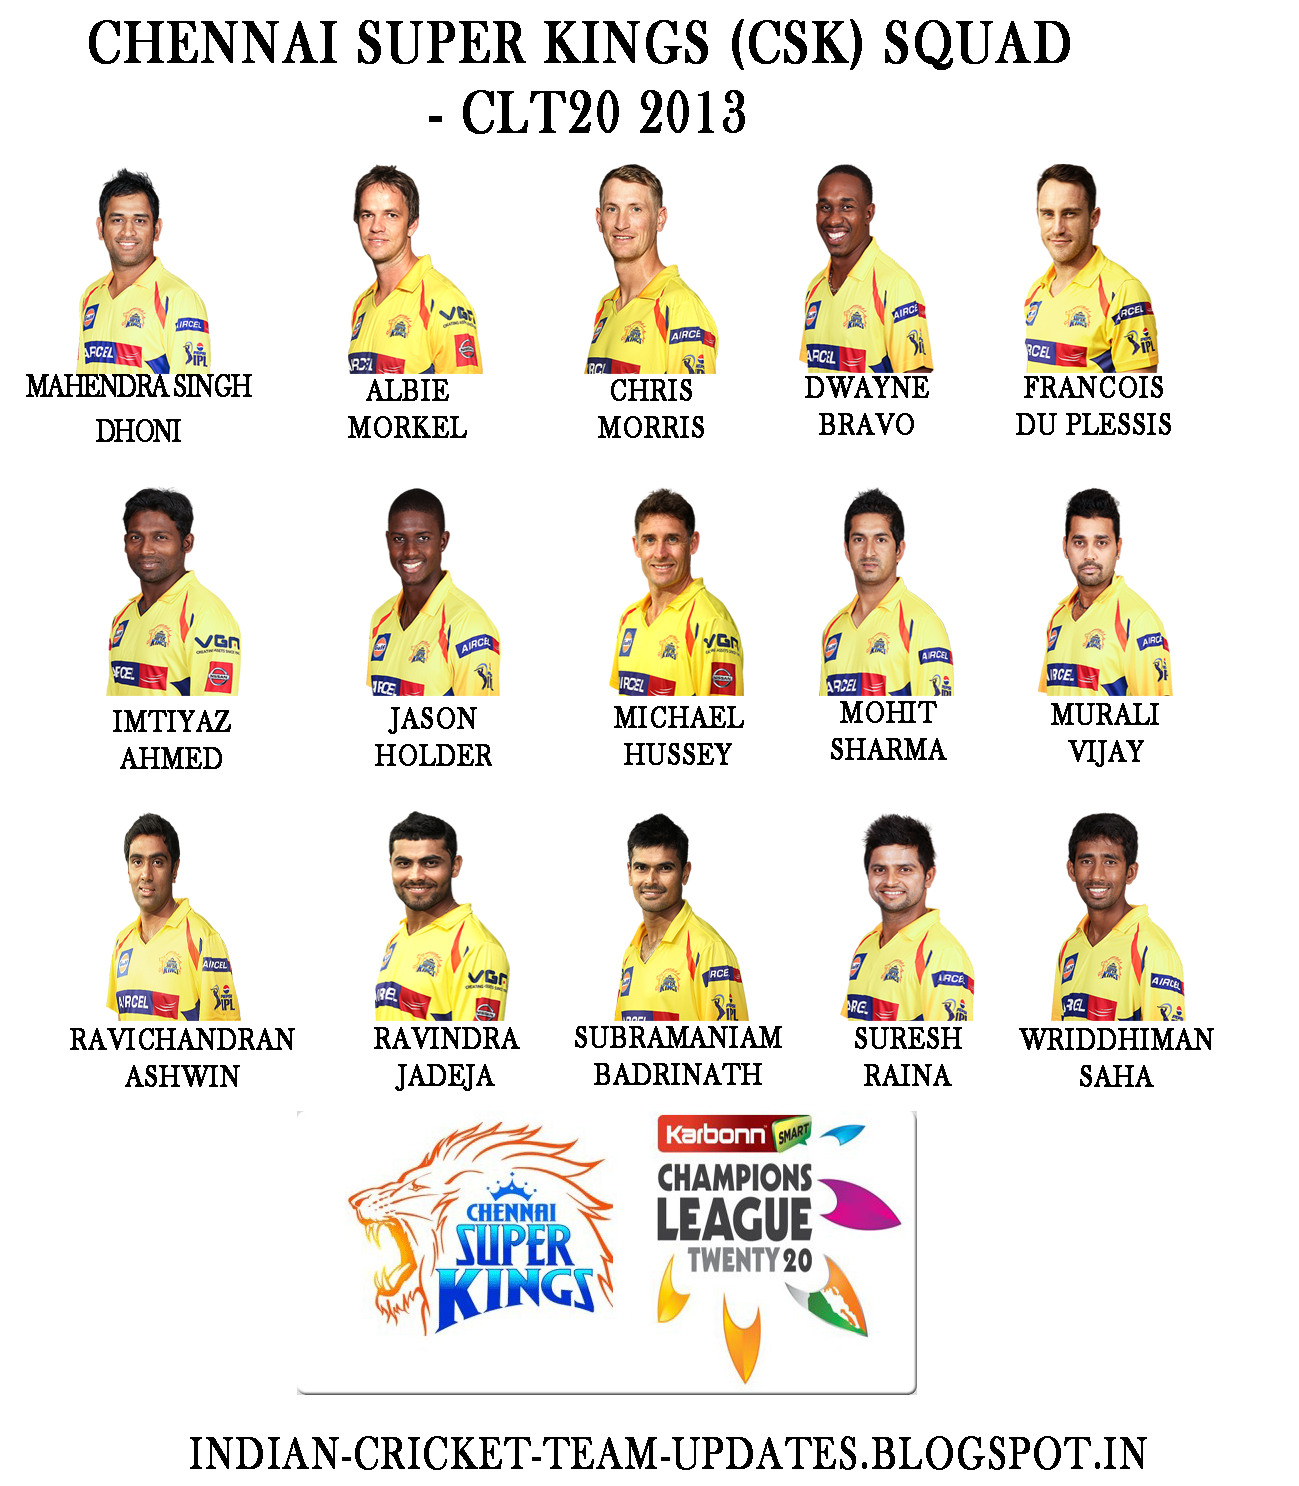 Chennai-Super-Kings-CLT20-2013-Squad